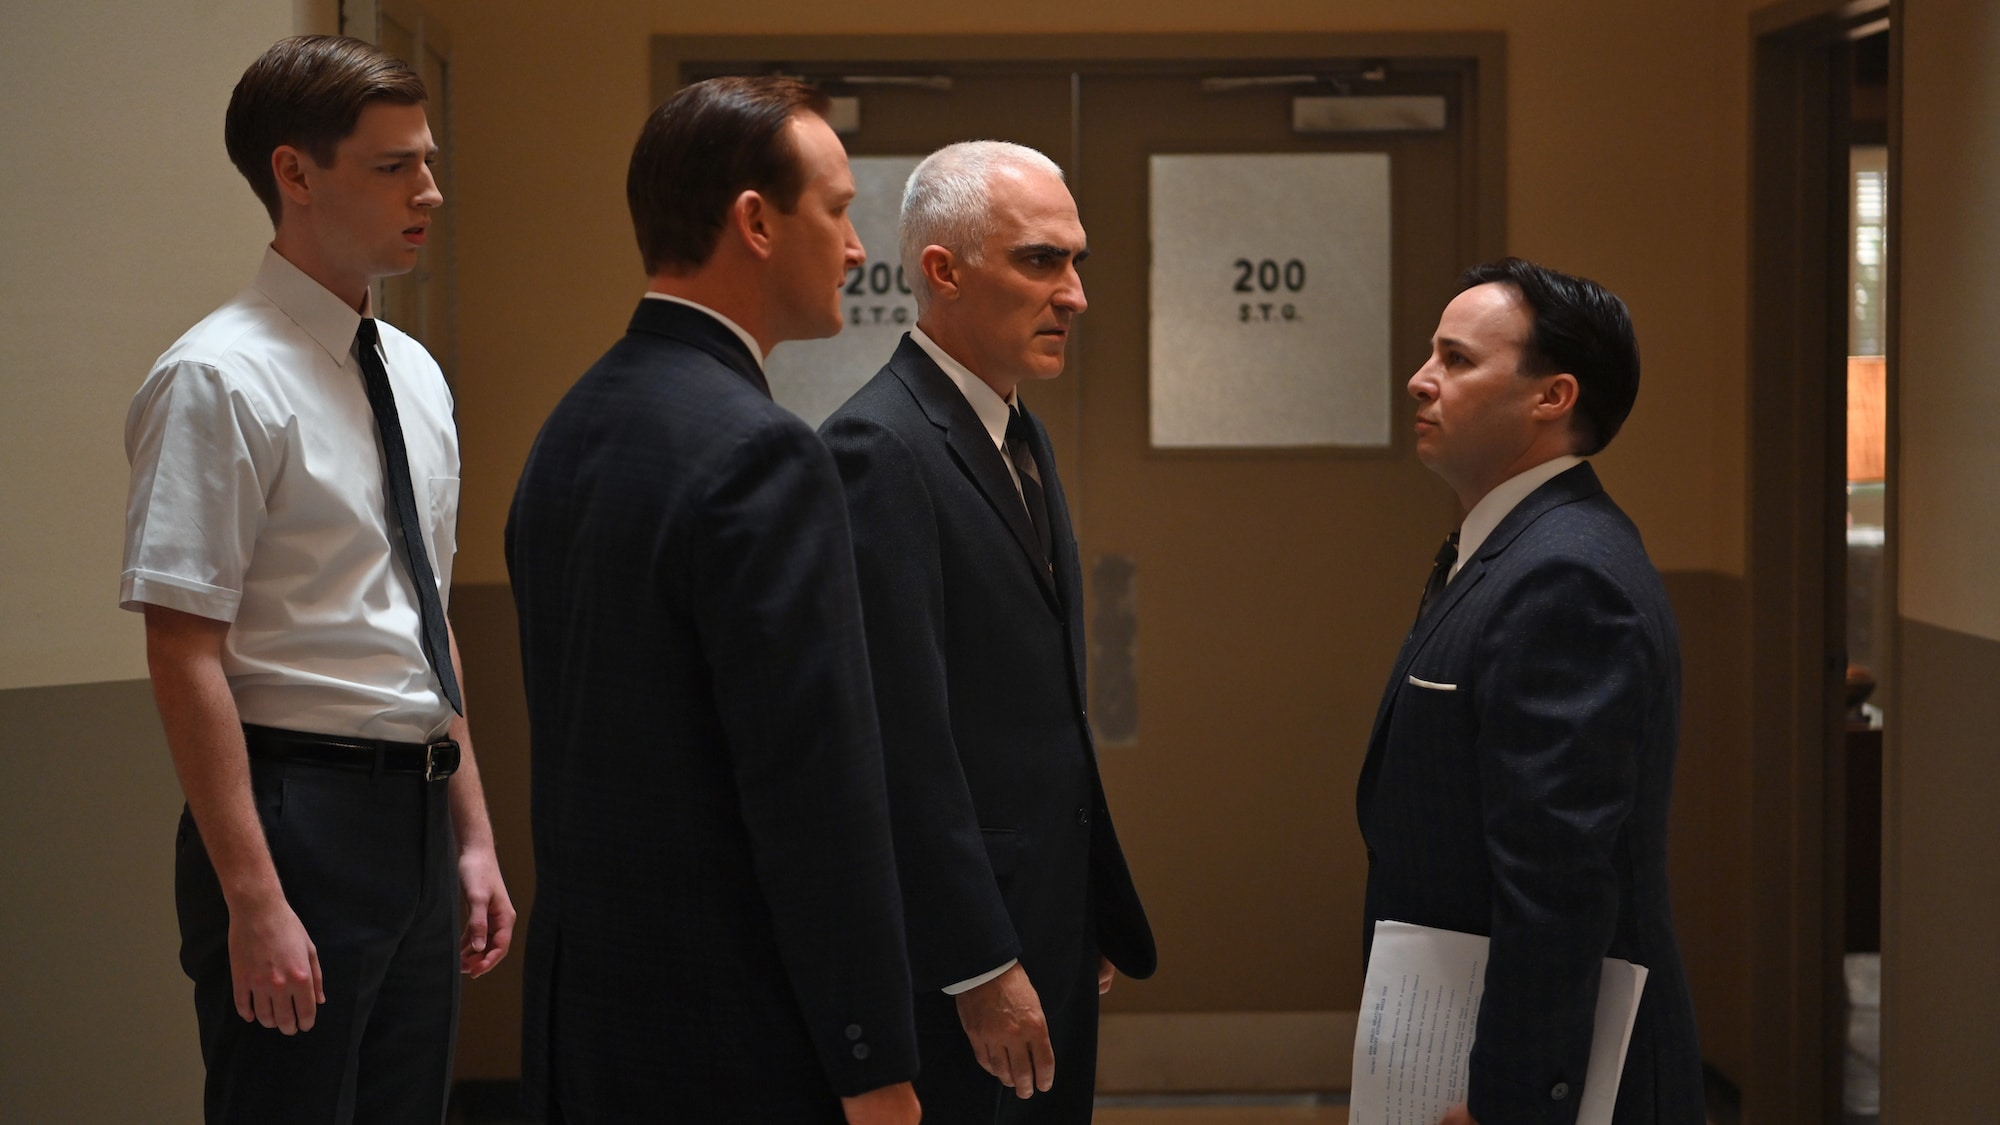 """L to R: Glynn Lunney played by Jackson Pace, Chris Kraft played by Eric Ladin, Bob Gilruth played by Patrick Fischler and John """"Shorty"""" Powers played by Danny Strong in National Geographic's THE RIGHT STUFF streaming on Disney+. (National Geographic/Gene P"""